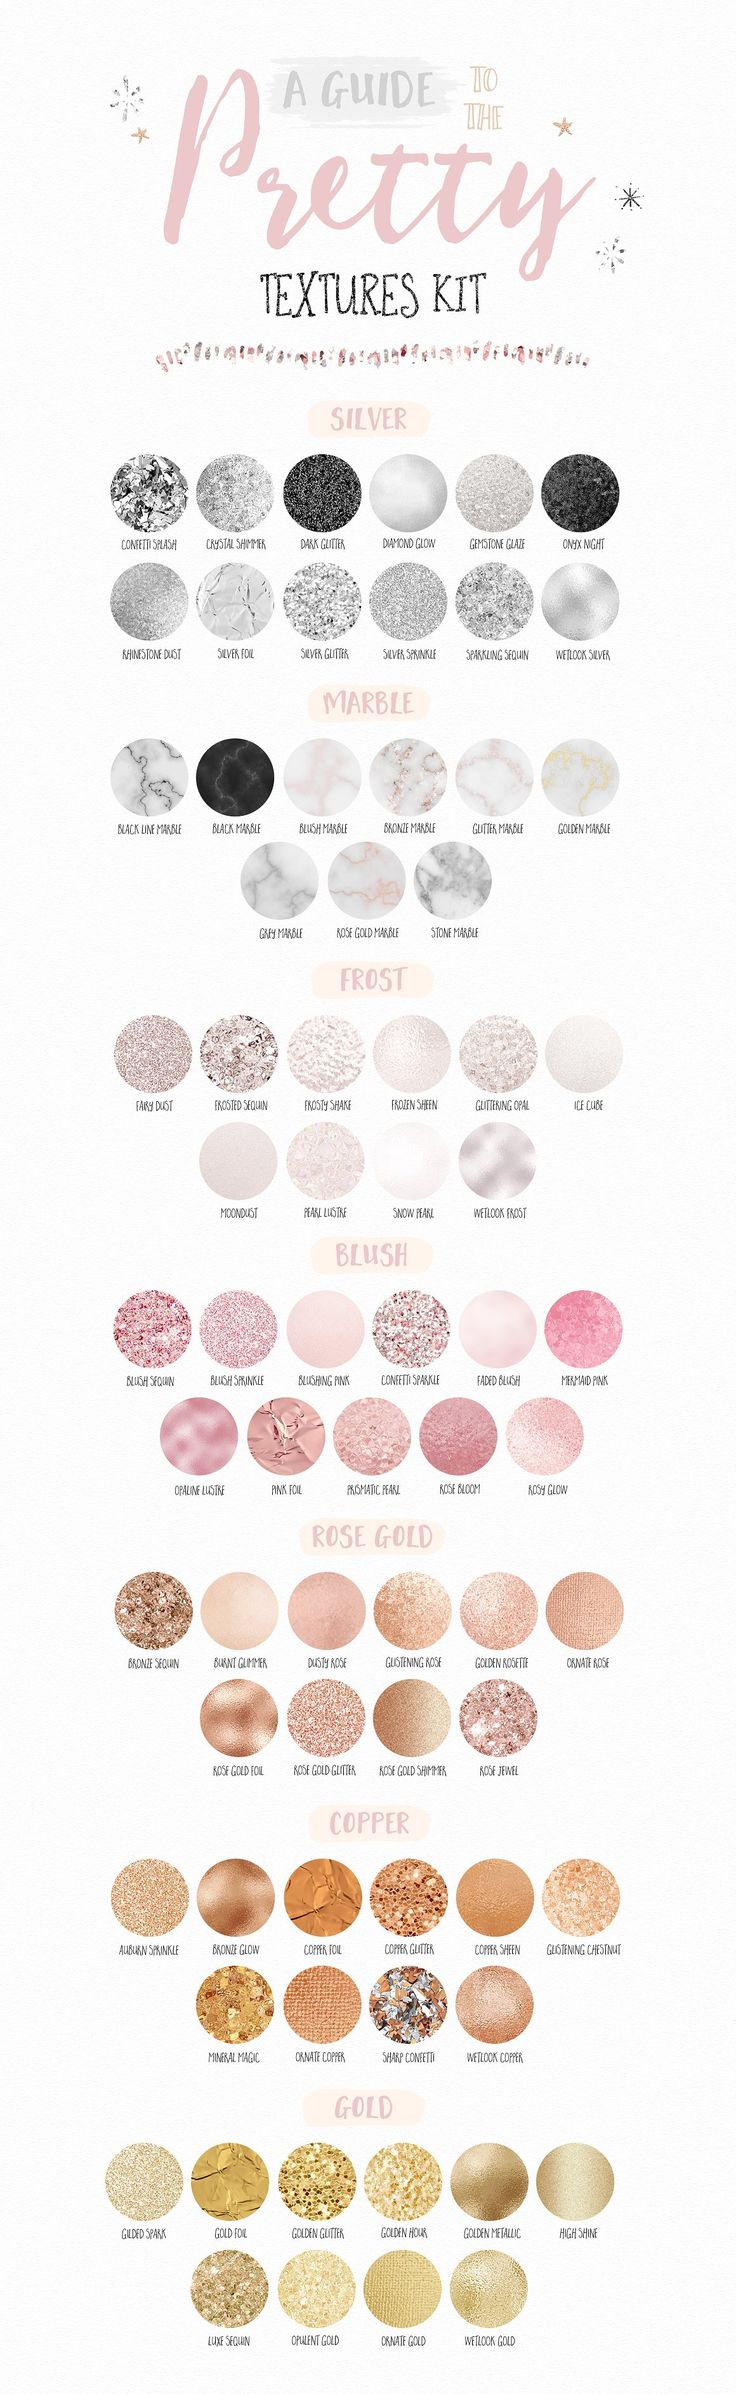 Marble, Rose Gold & Pretty Textures by Blog Pixie on @creativemarket #ad | Use these stylish textures in Photoshop, Canva, or Illustrator. Makes great backgrounds or clipping masks for textured text effects.